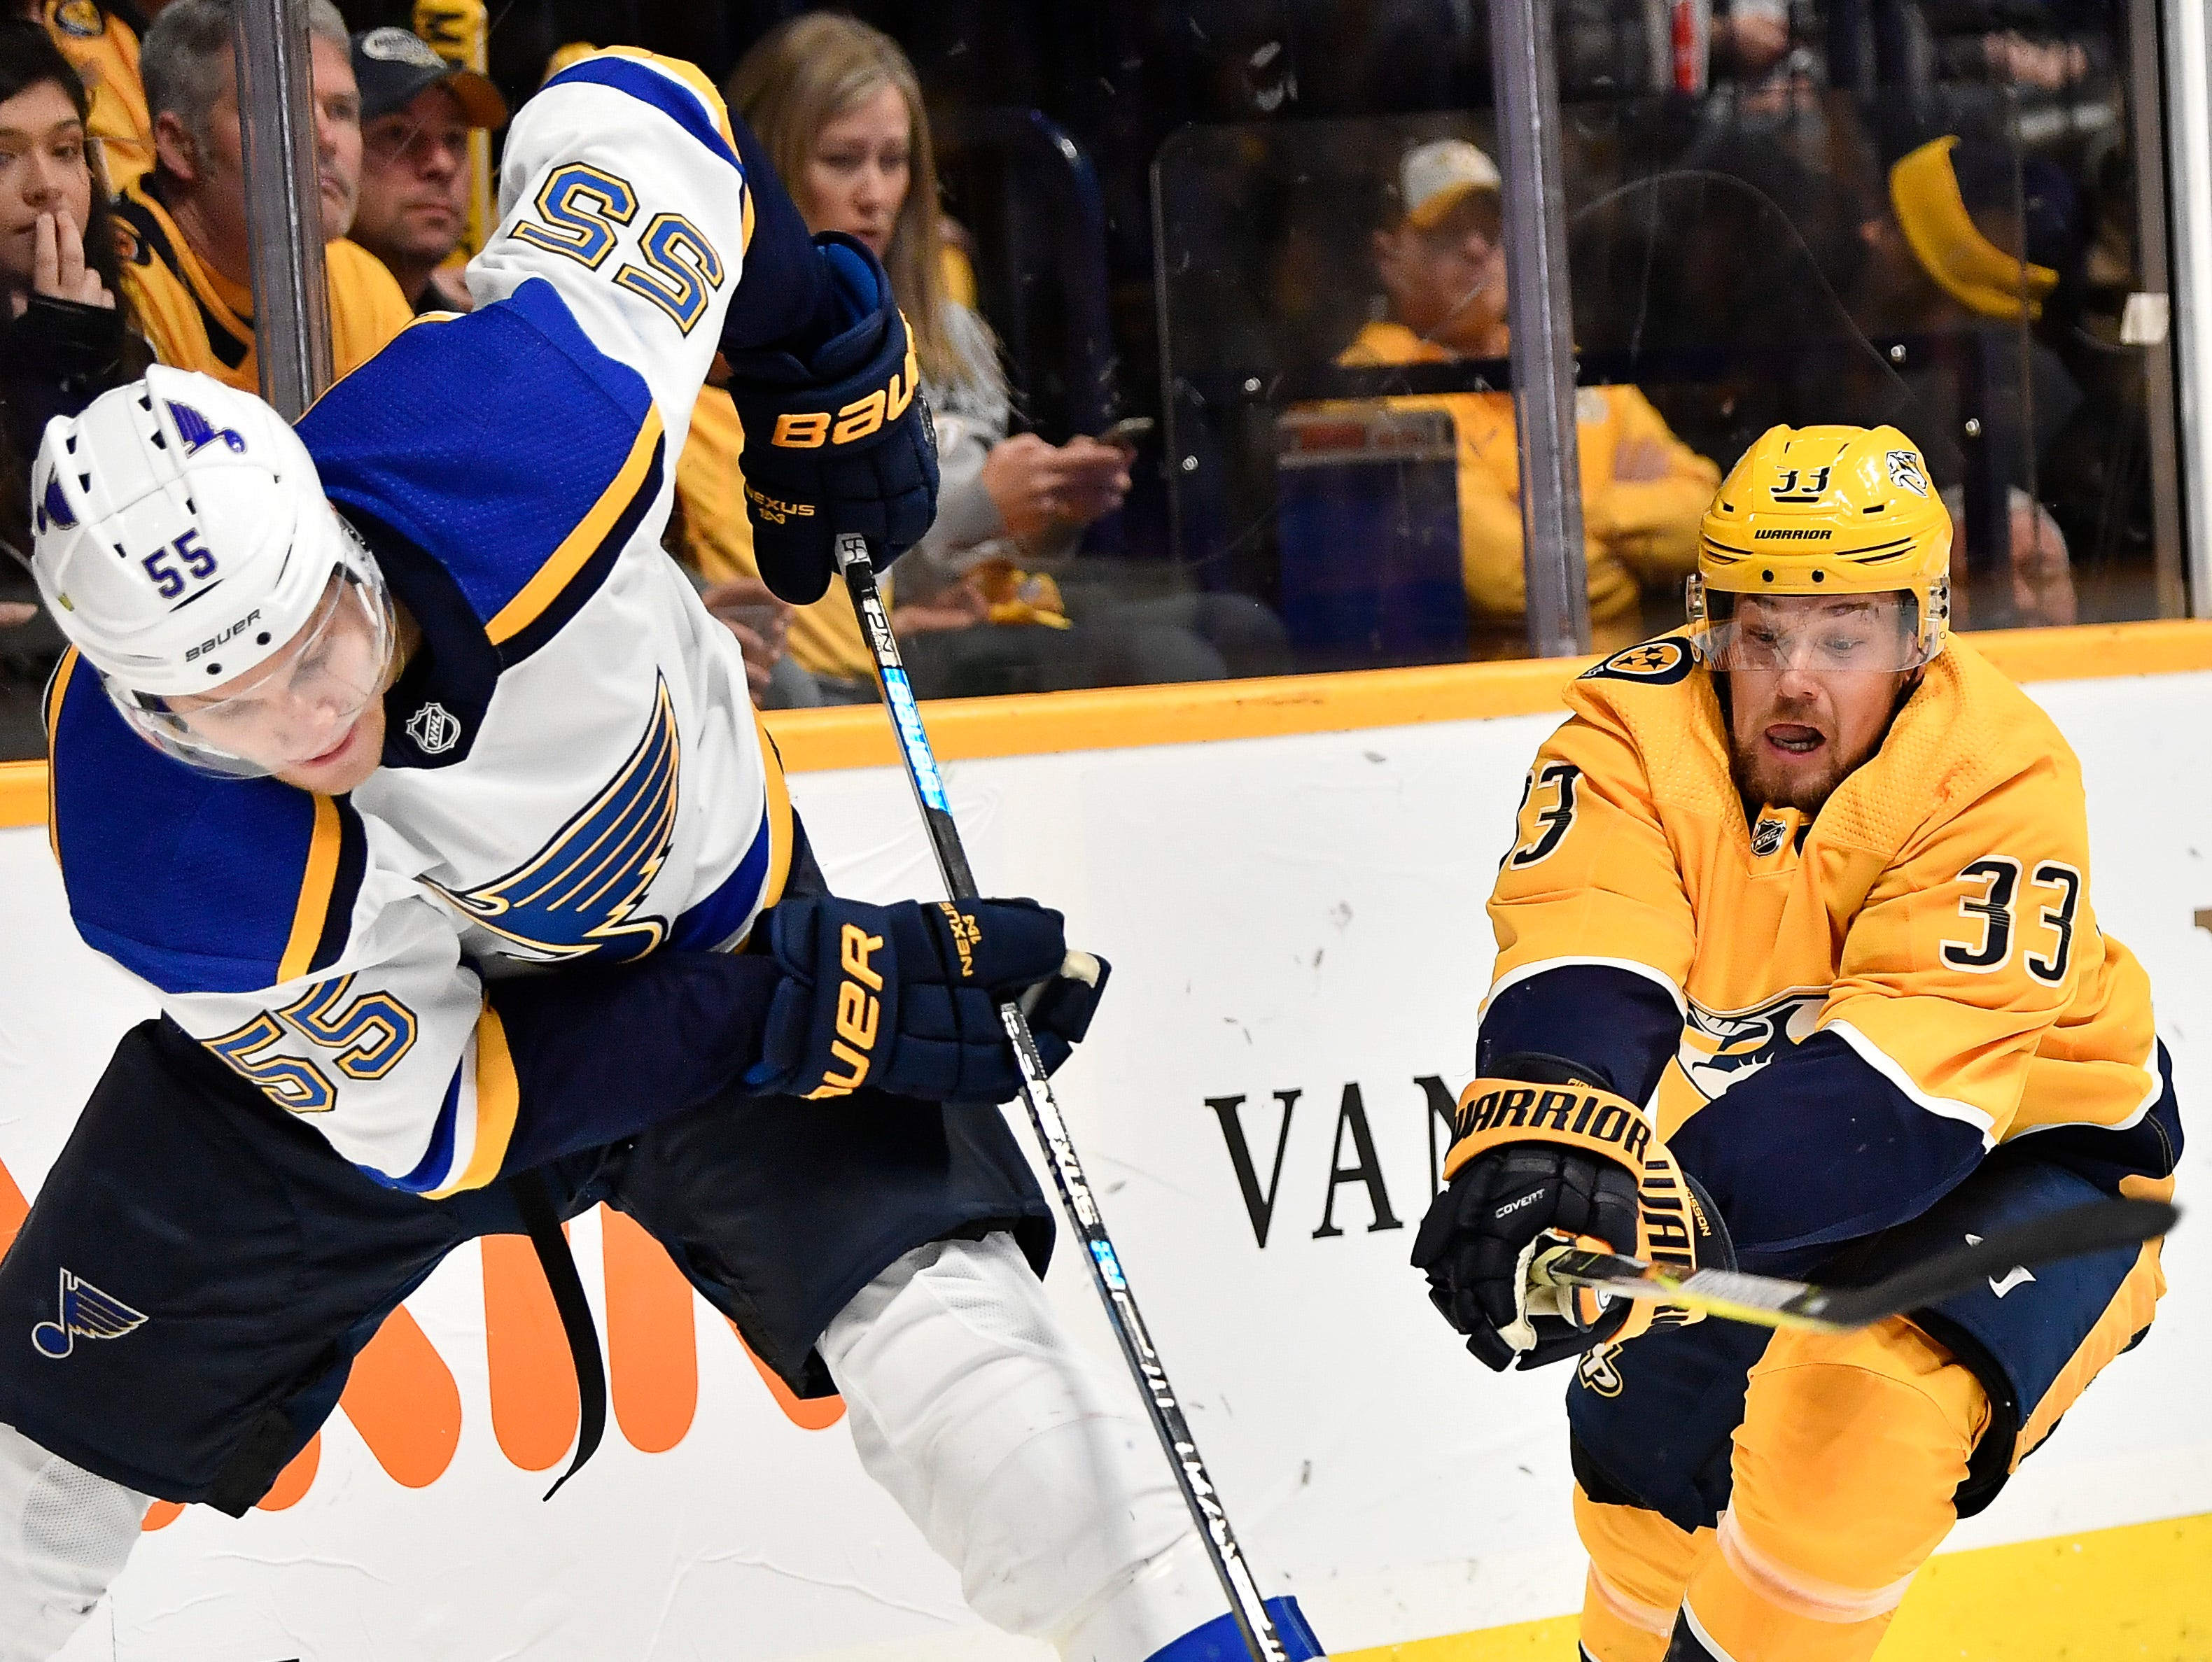 Predators right wing Viktor Arvidsson (33) dives for the puck against Blues defenseman Colton Parayko (55) during the first period at Bridgestone Arena Sunday Feb. 10, 2019 in Nashville, Tenn.